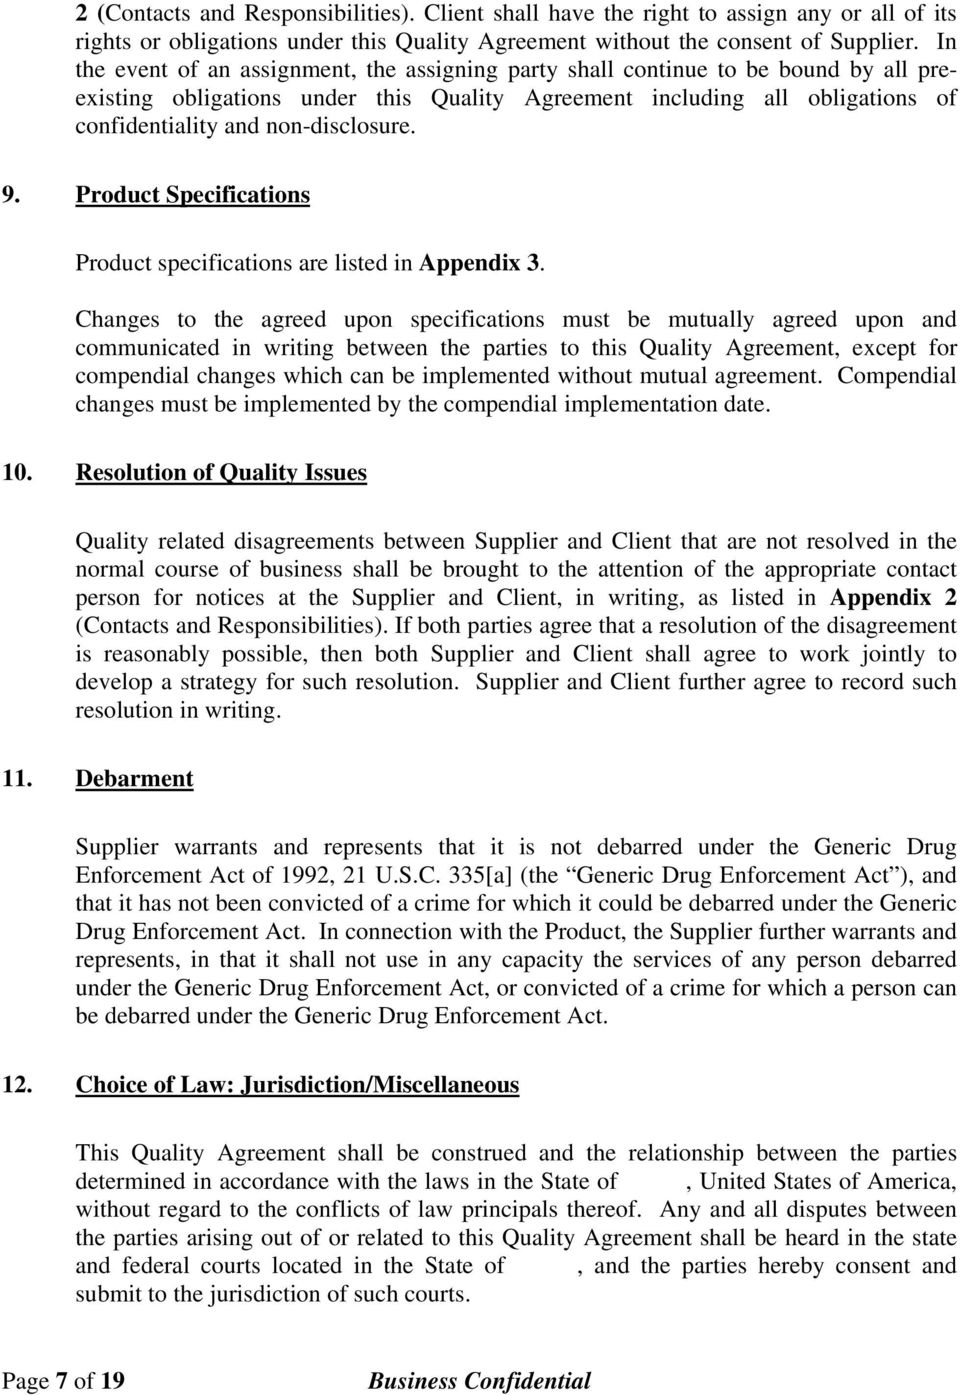 non-disclosure. 9. Product Specifications Product specifications are listed in Appendix 3.